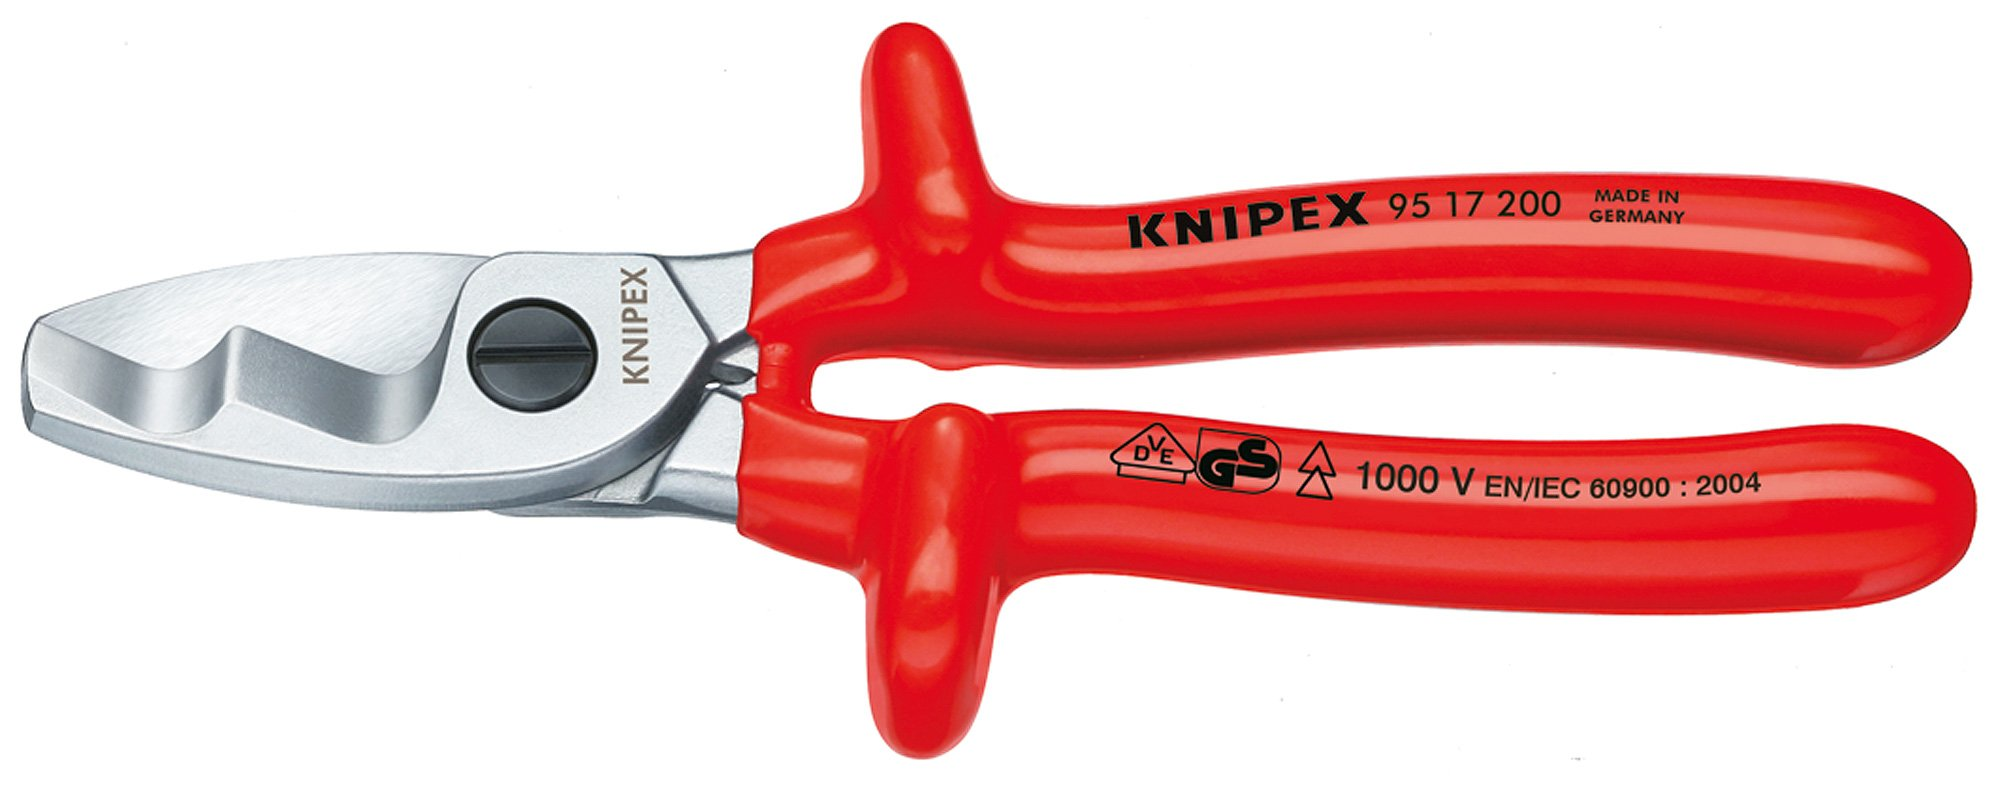 Knipex 95 17 200 Cable Shears 7,87'' with twin cutting edge by KNIPEX Tools